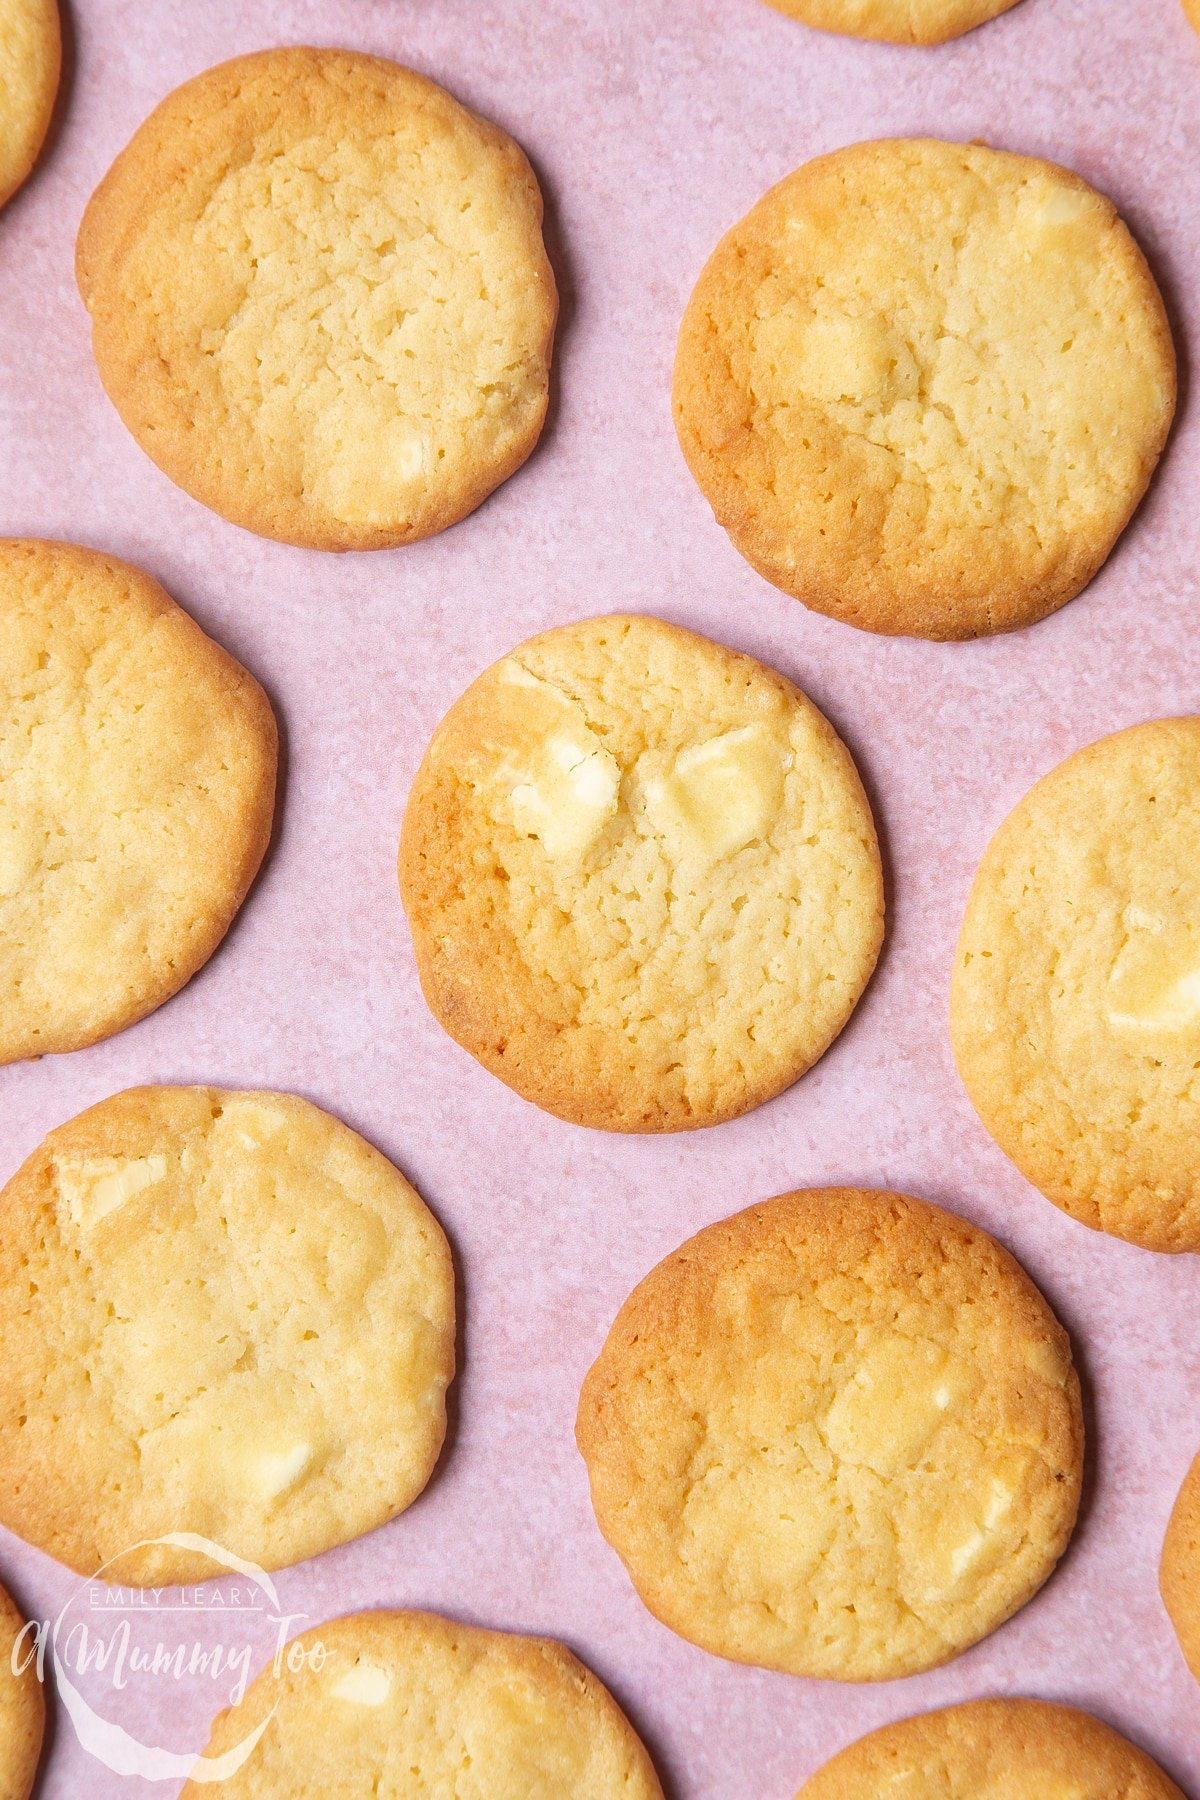 Overhead shot of the baked white chocolate chip cookies on a pink surface.